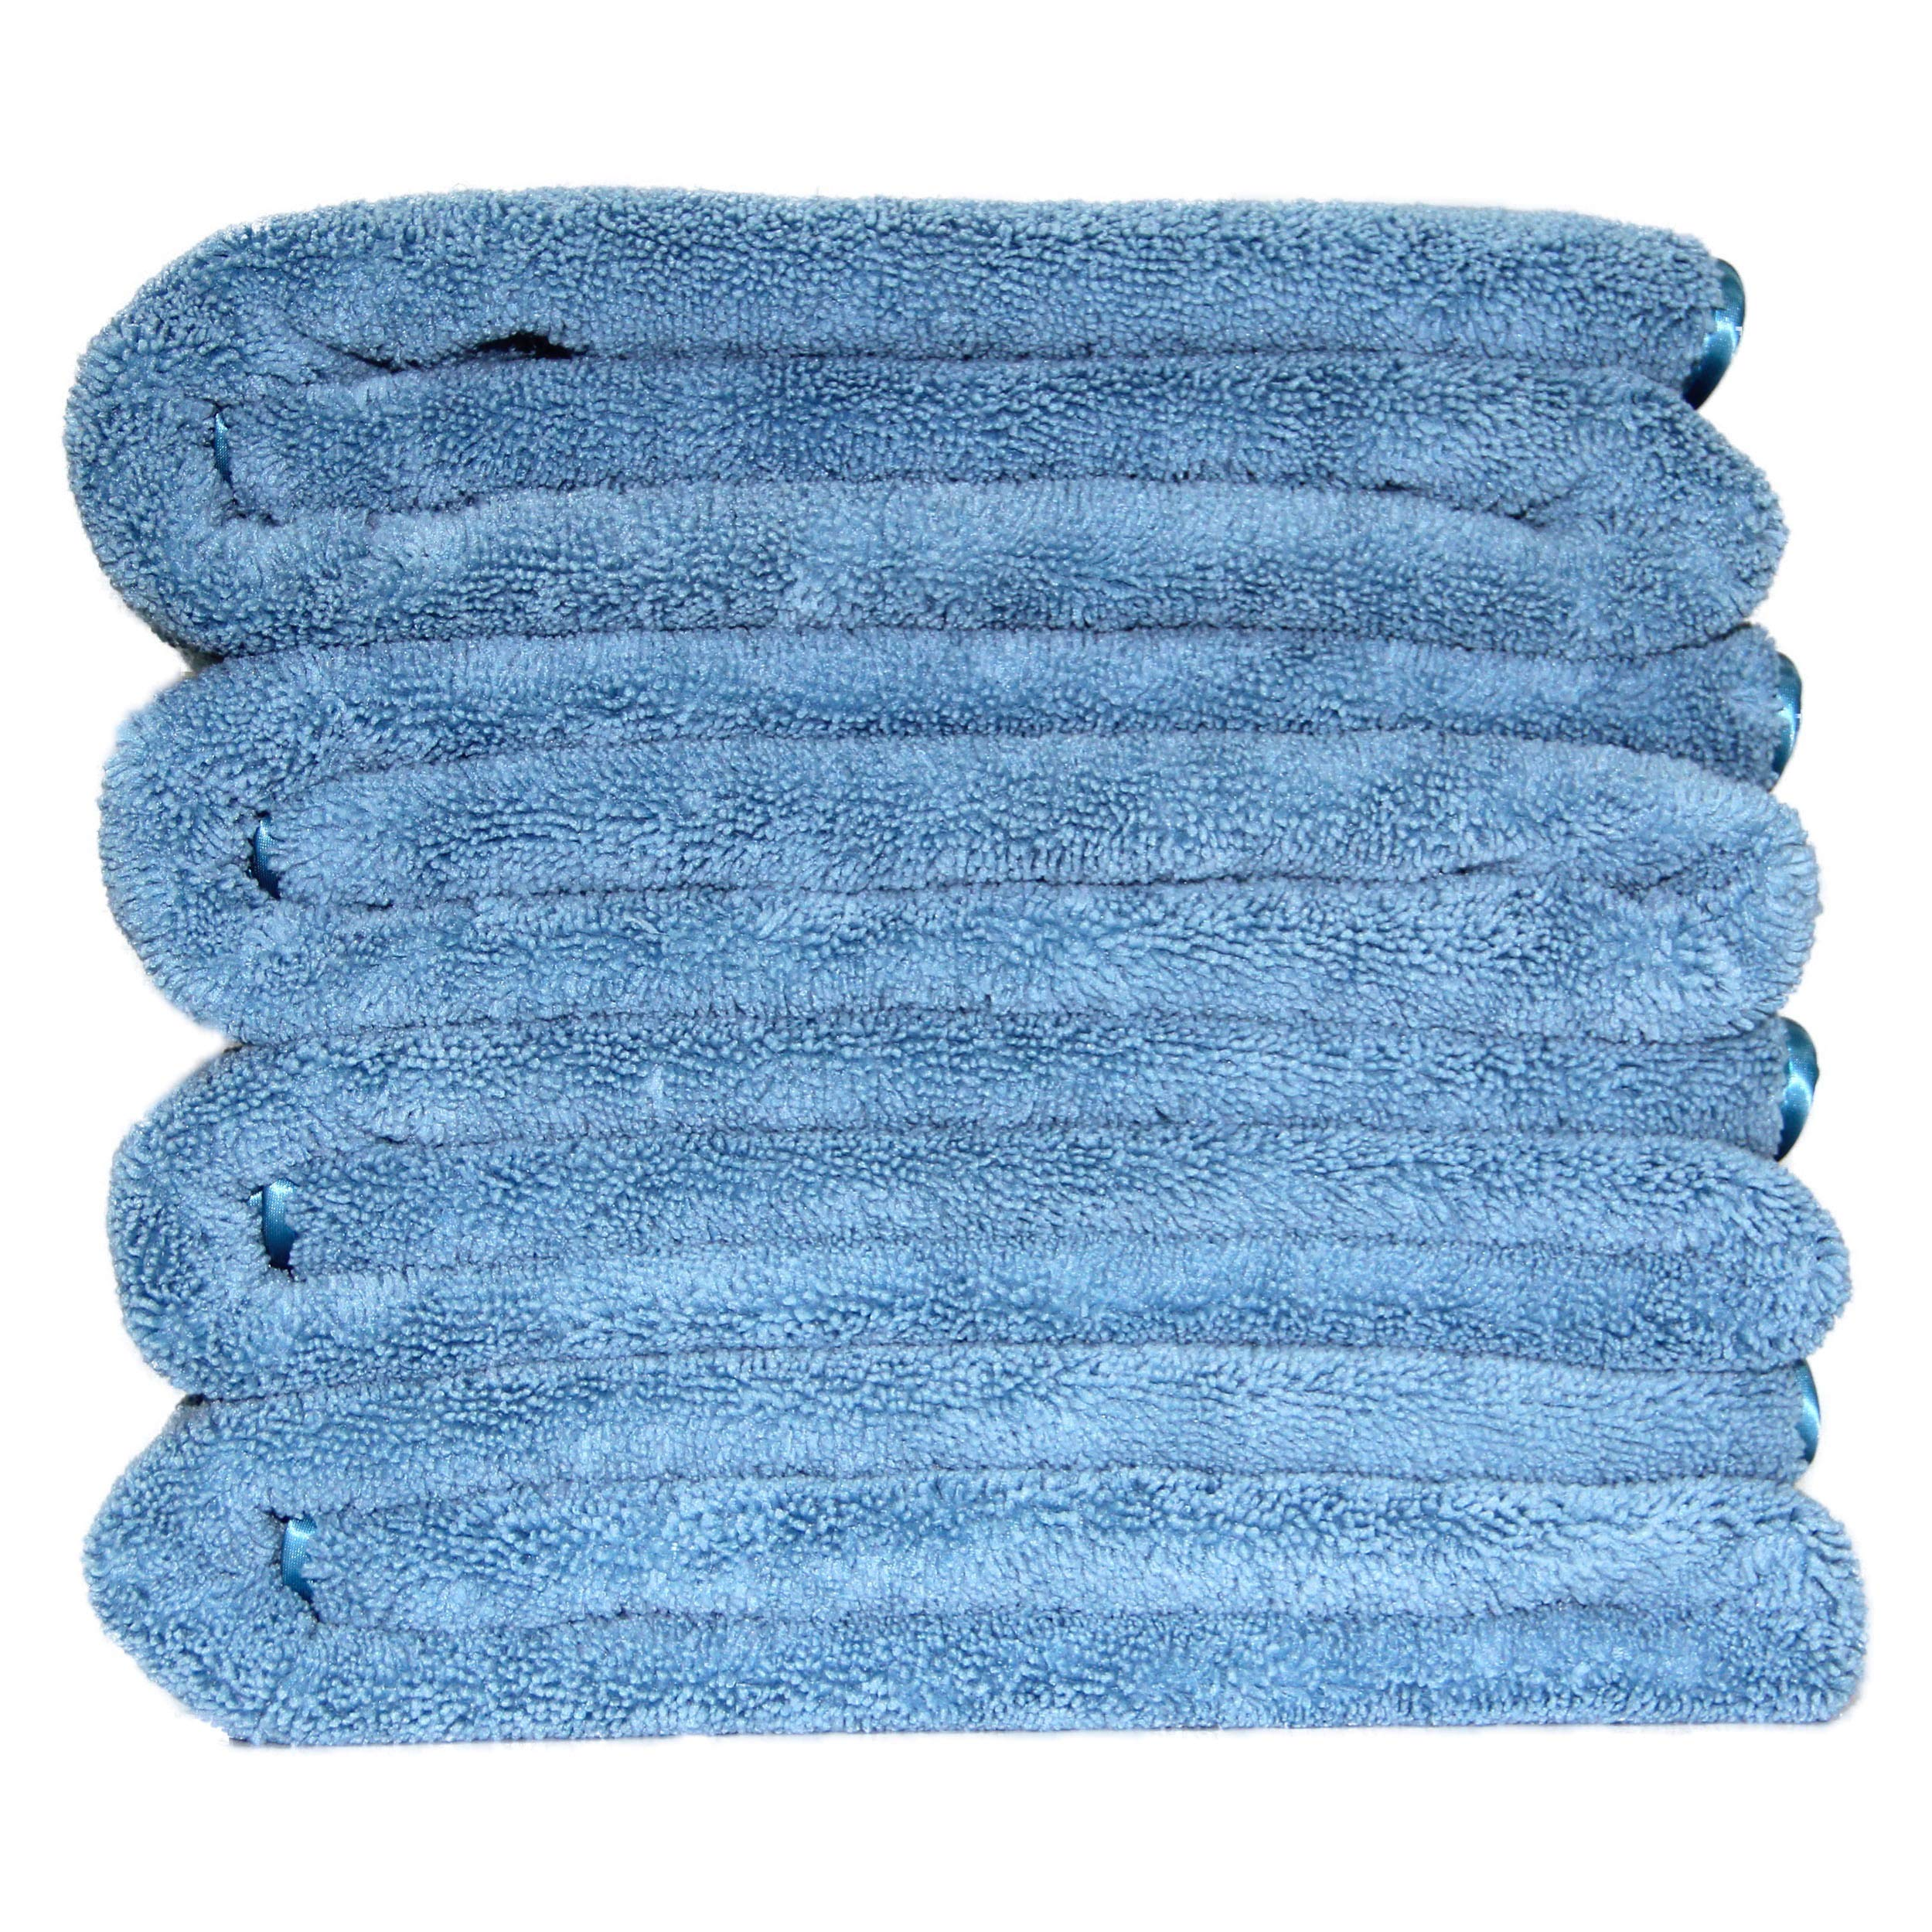 Polyte Premium Quick Dry Lint Free Microfiber Bath Towel, 57 x 30 in, Set of 4 (Blue)